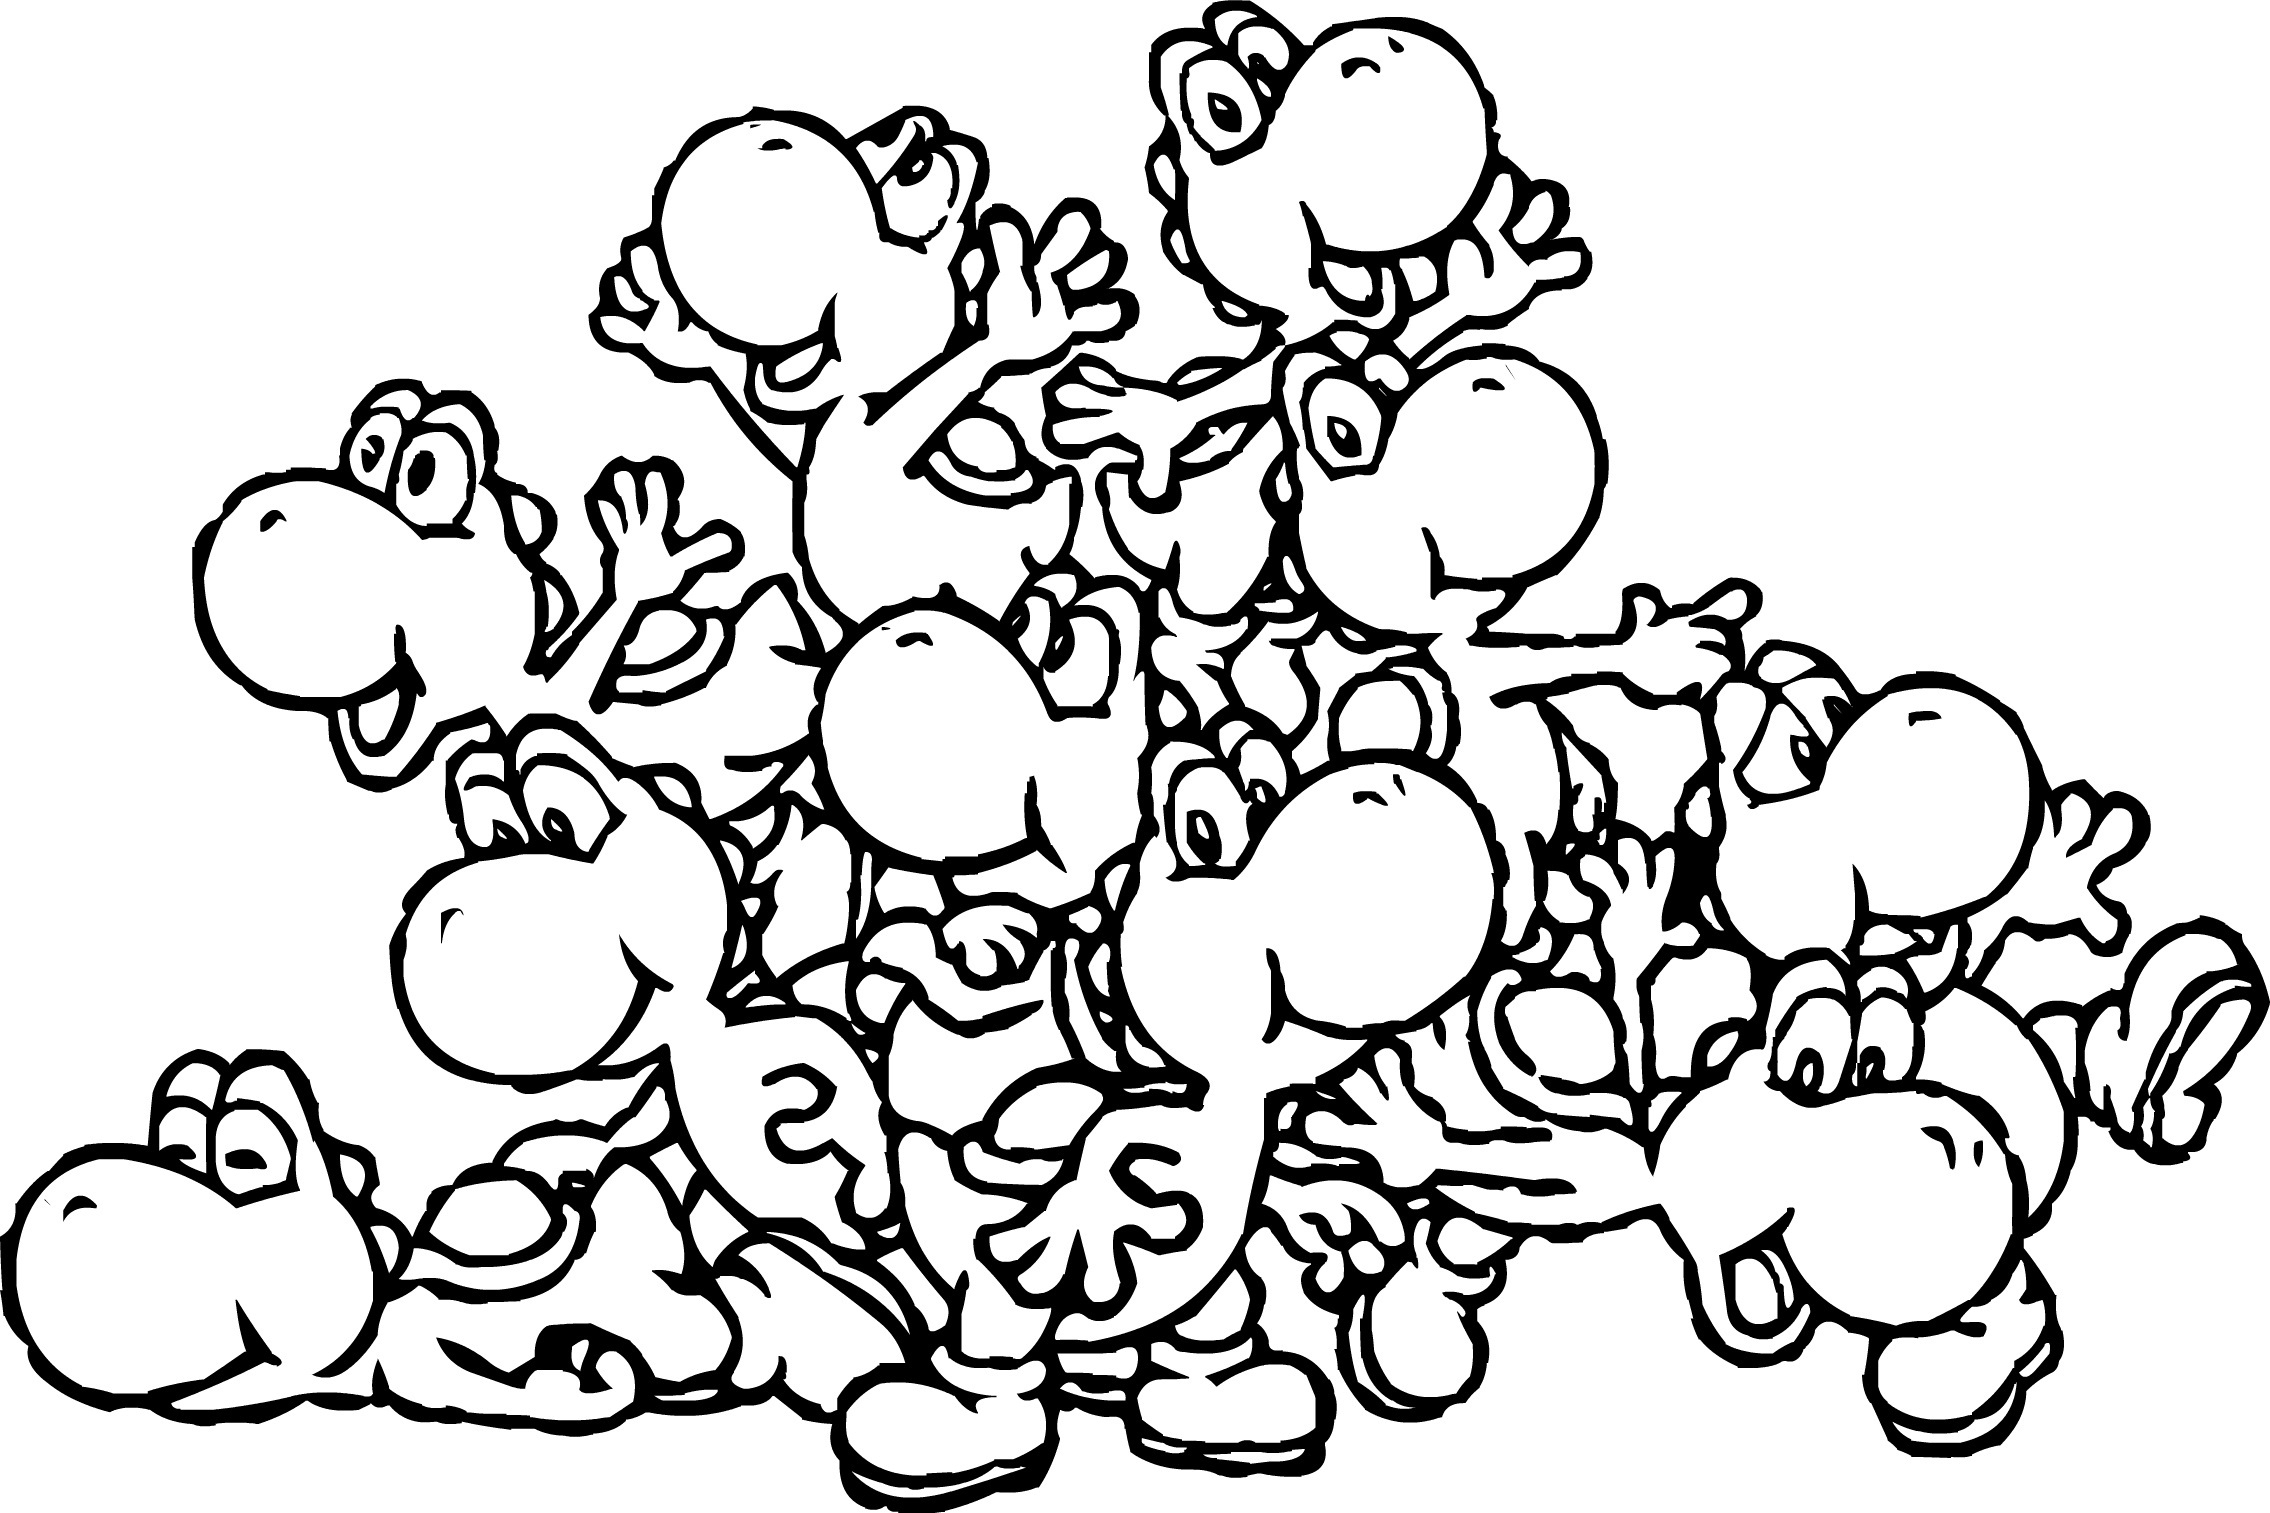 2270x1513 Innovative Mario And Yoshi Coloring Pages To P